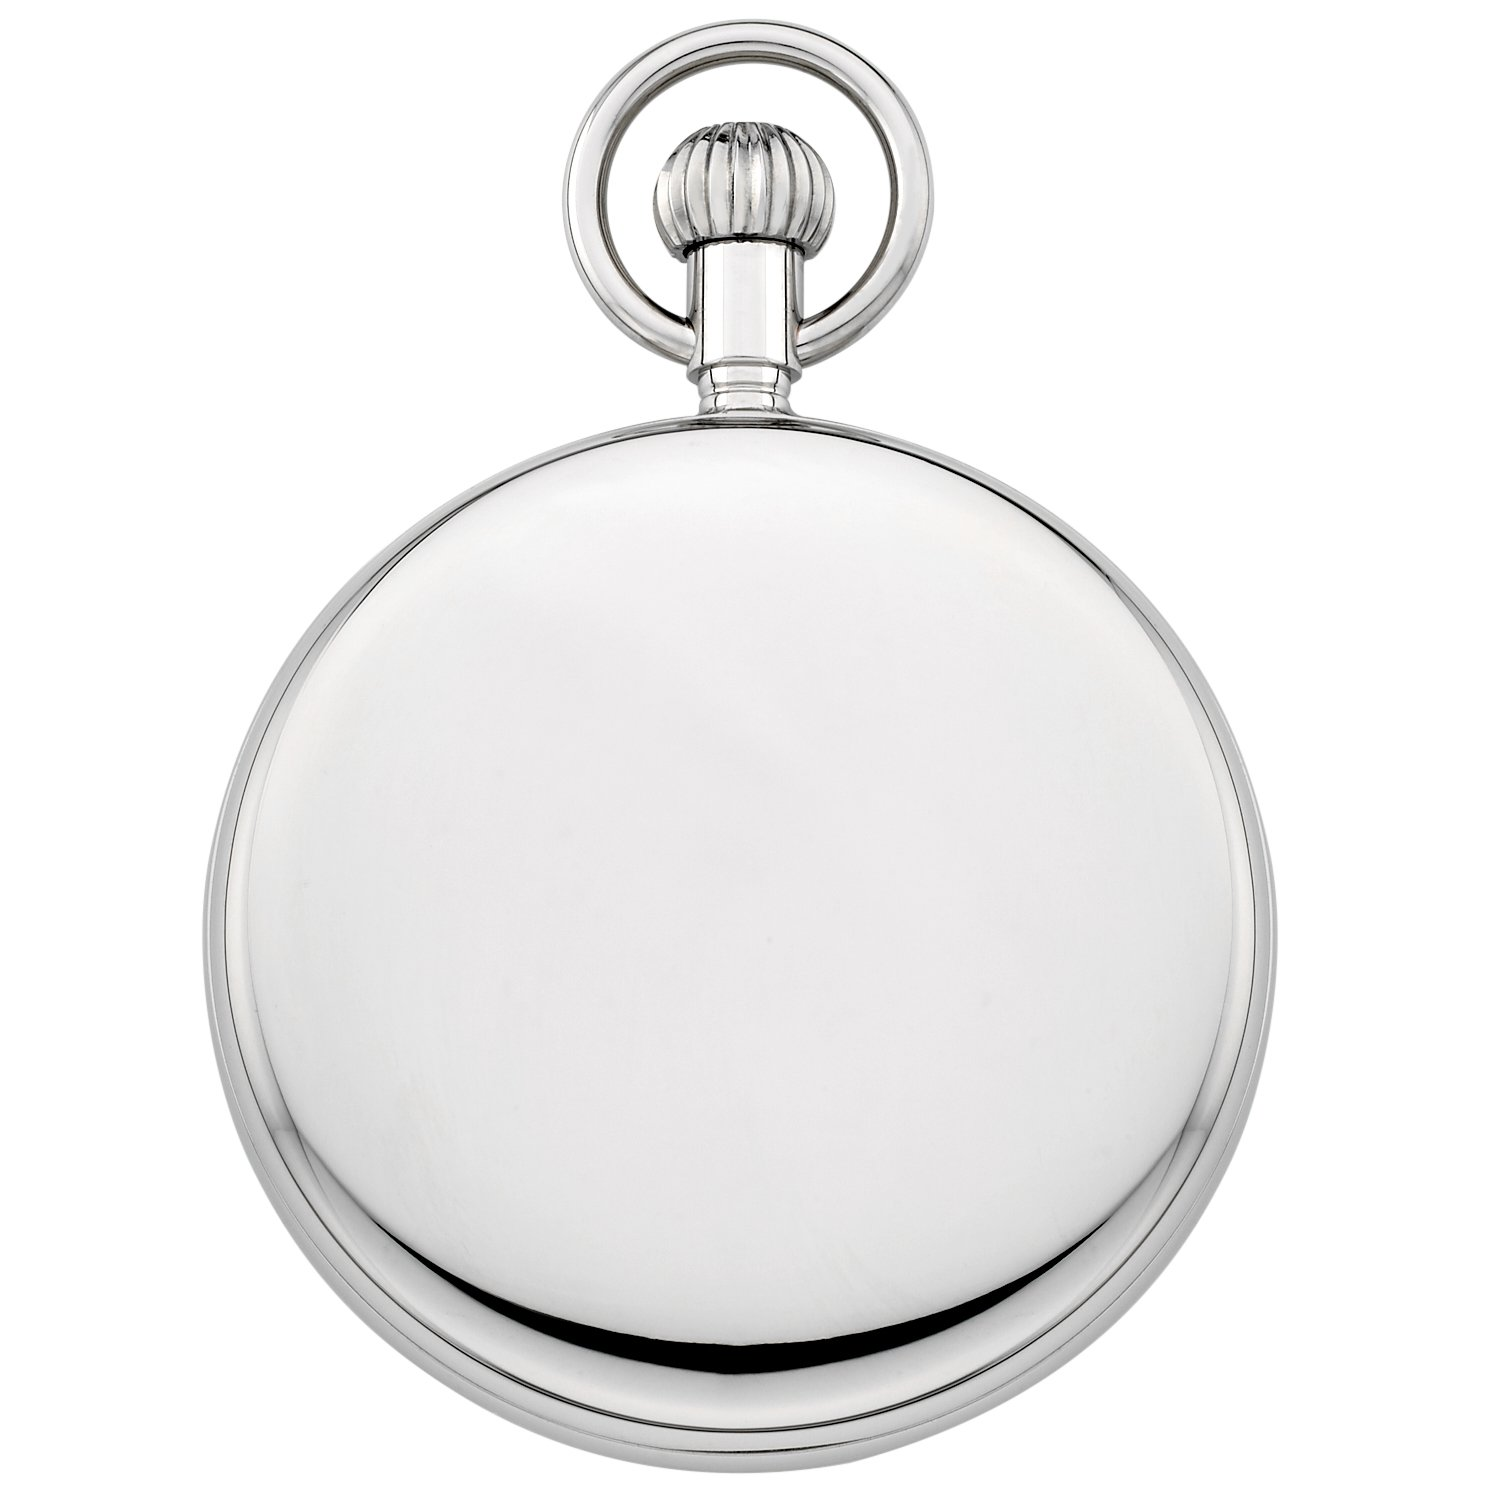 Gotham Men's Silver-Tone Mechanical Hand Wind Railroad Pocket Watch # GWC14102S by Gotham (Image #4)